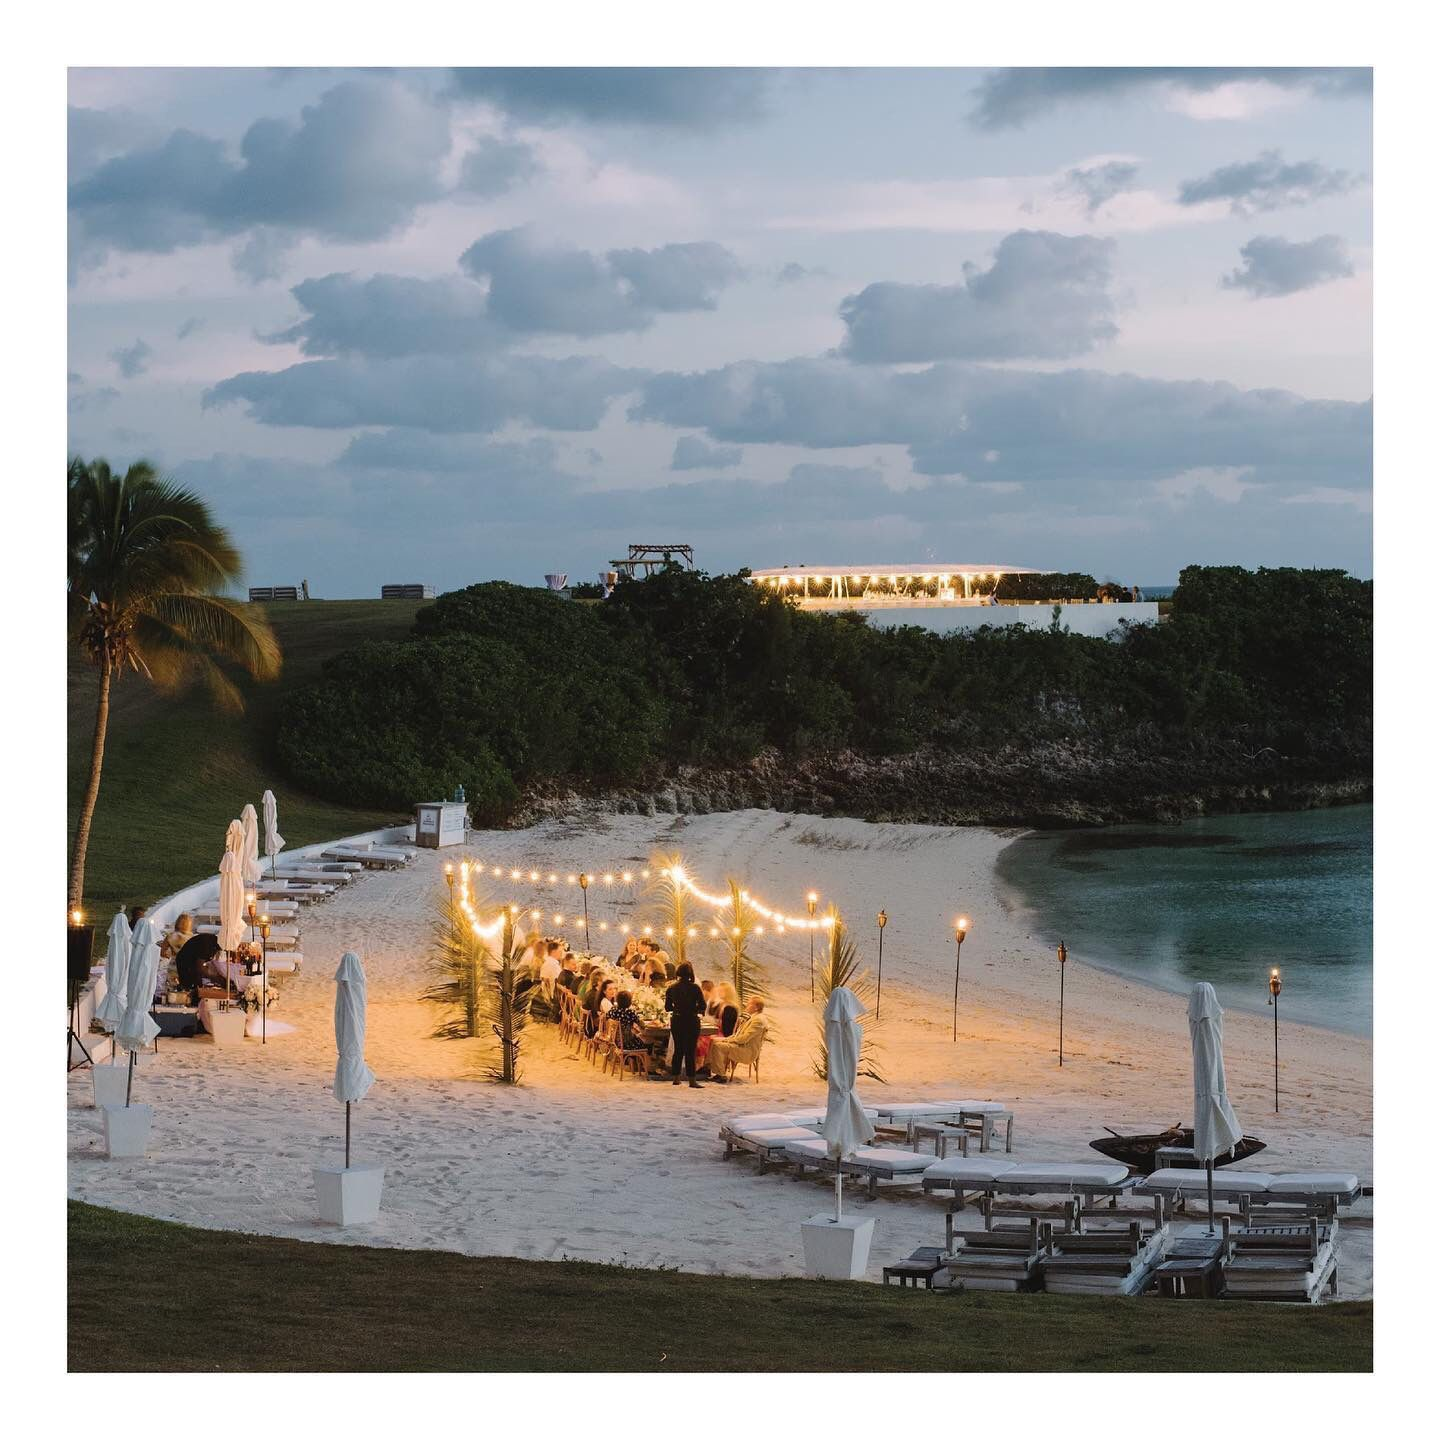 Beach Bahamas Wedding Reception Venue In 2020 Bahamas Wedding Bahamas Wedding Venues Wedding Reception Venues